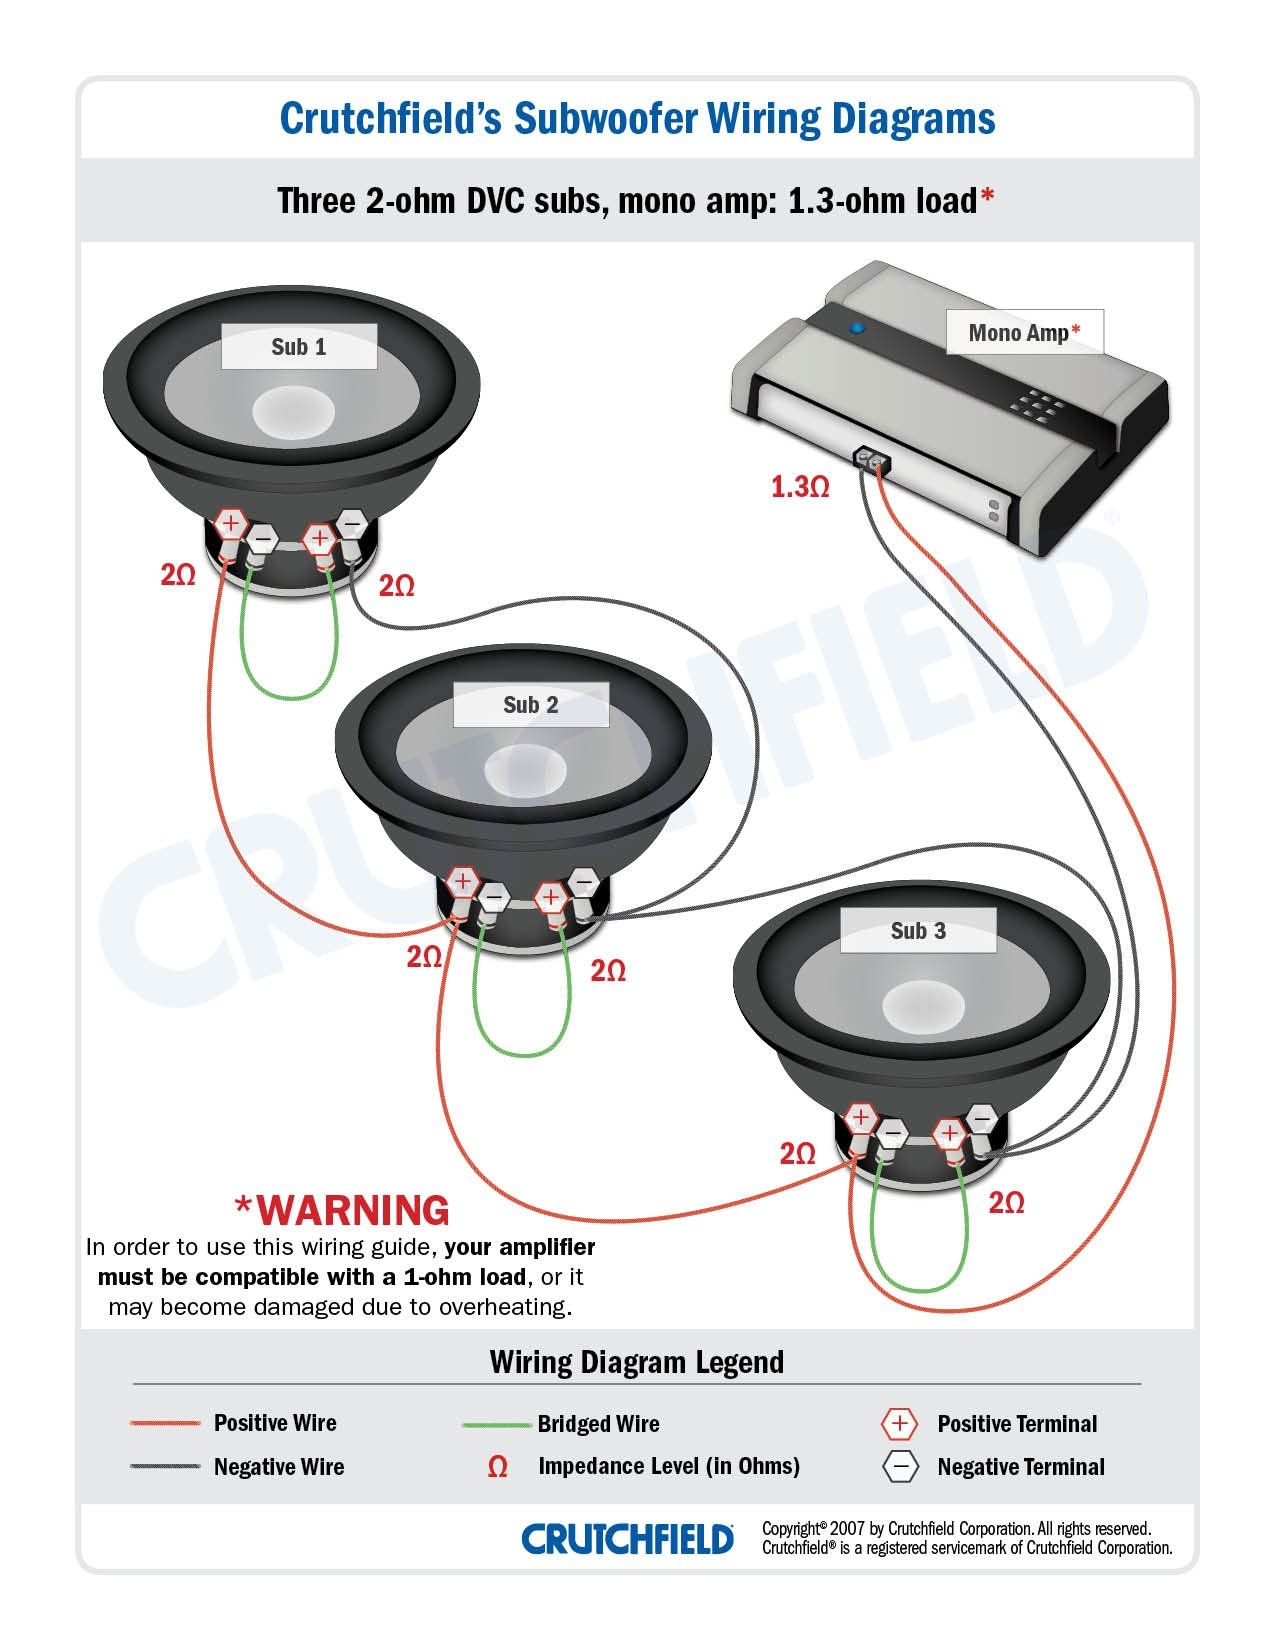 3 DVC 2 ohm mono low imp how to match subwoofers and amplifiers boston subsat 6 wiring diagram at panicattacktreatment.co